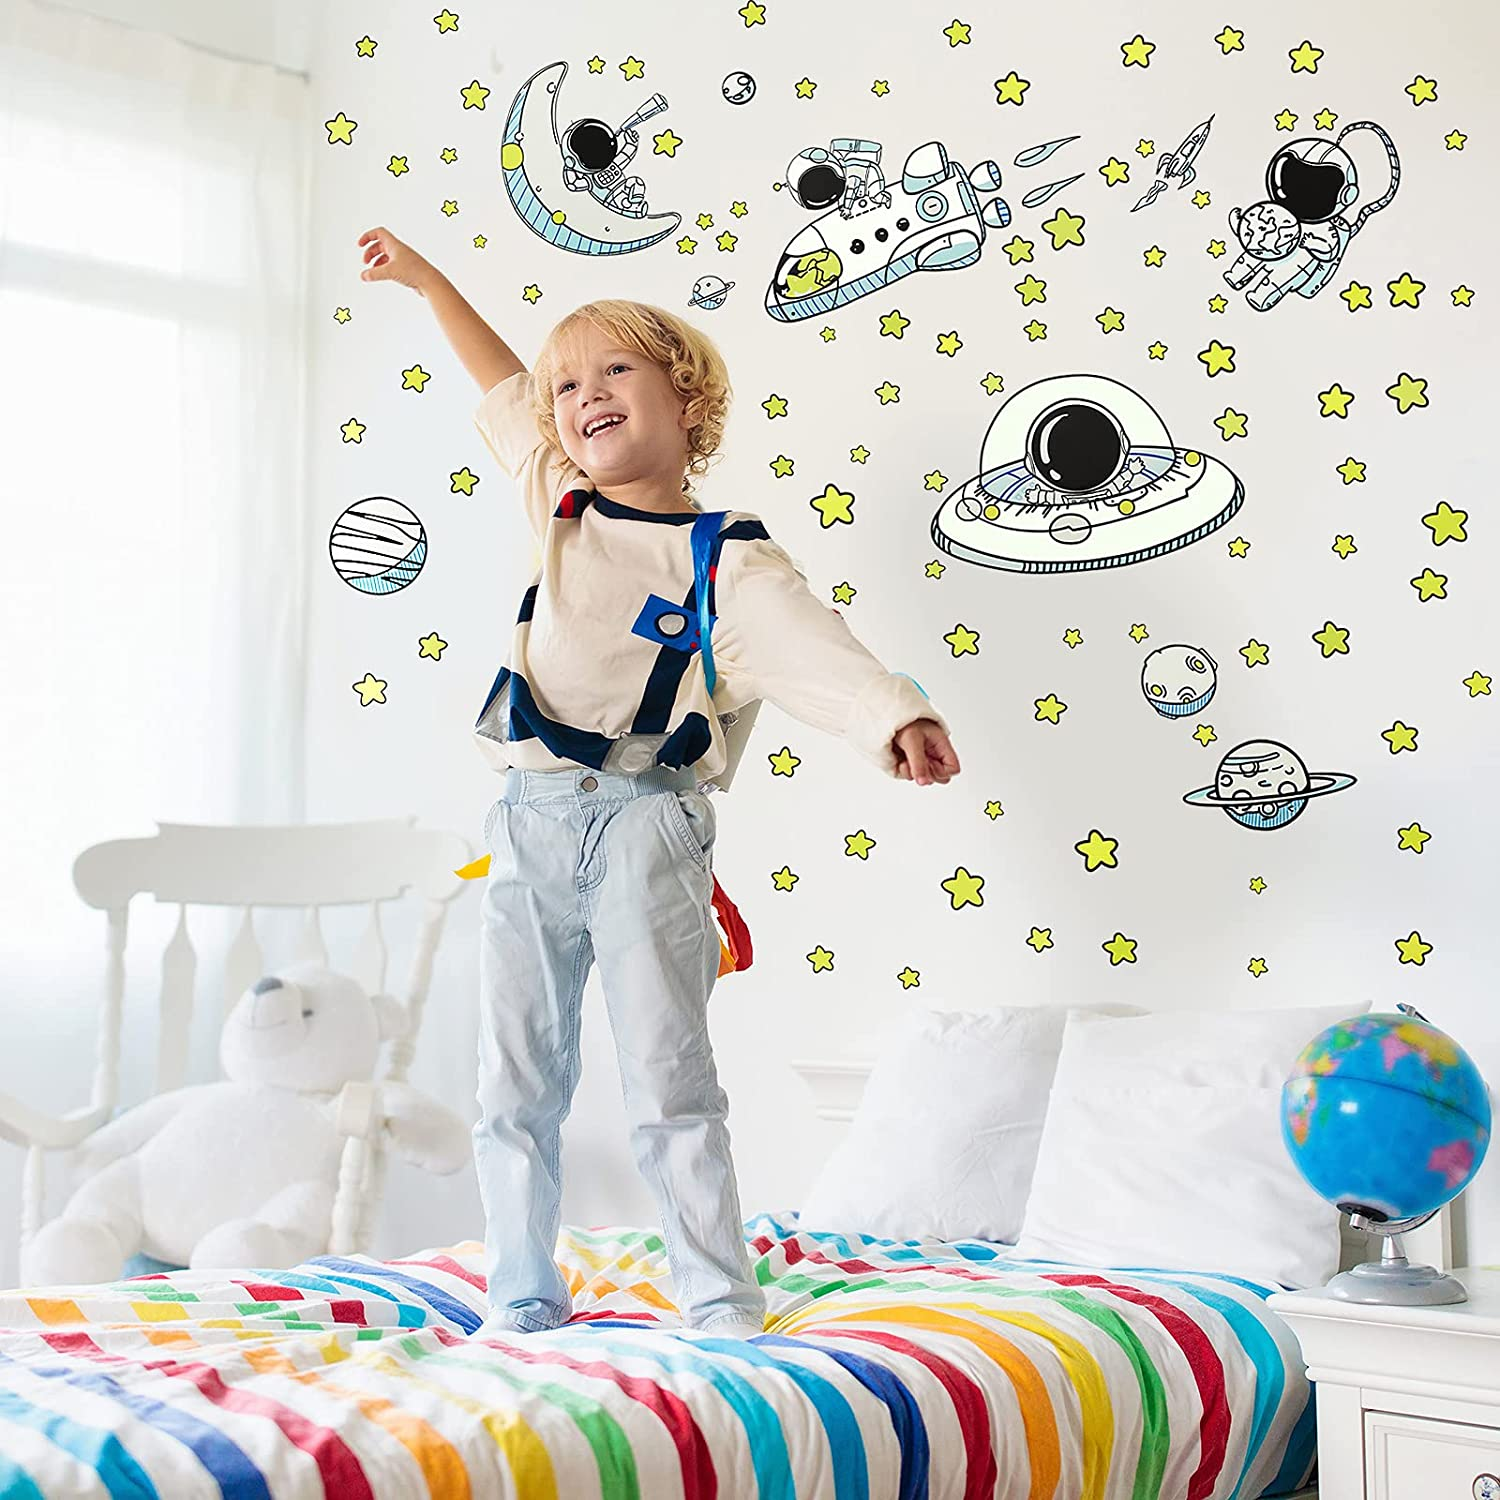 Laumoi 116 Pieces Glow in The Dark Wall Sticker Astronaut Planet Outer Space Stars DIY PVC Removable Large Wall Decal Bright Solar System Wall Sticker for Kids Bedroom Living Room Playing Room Decor